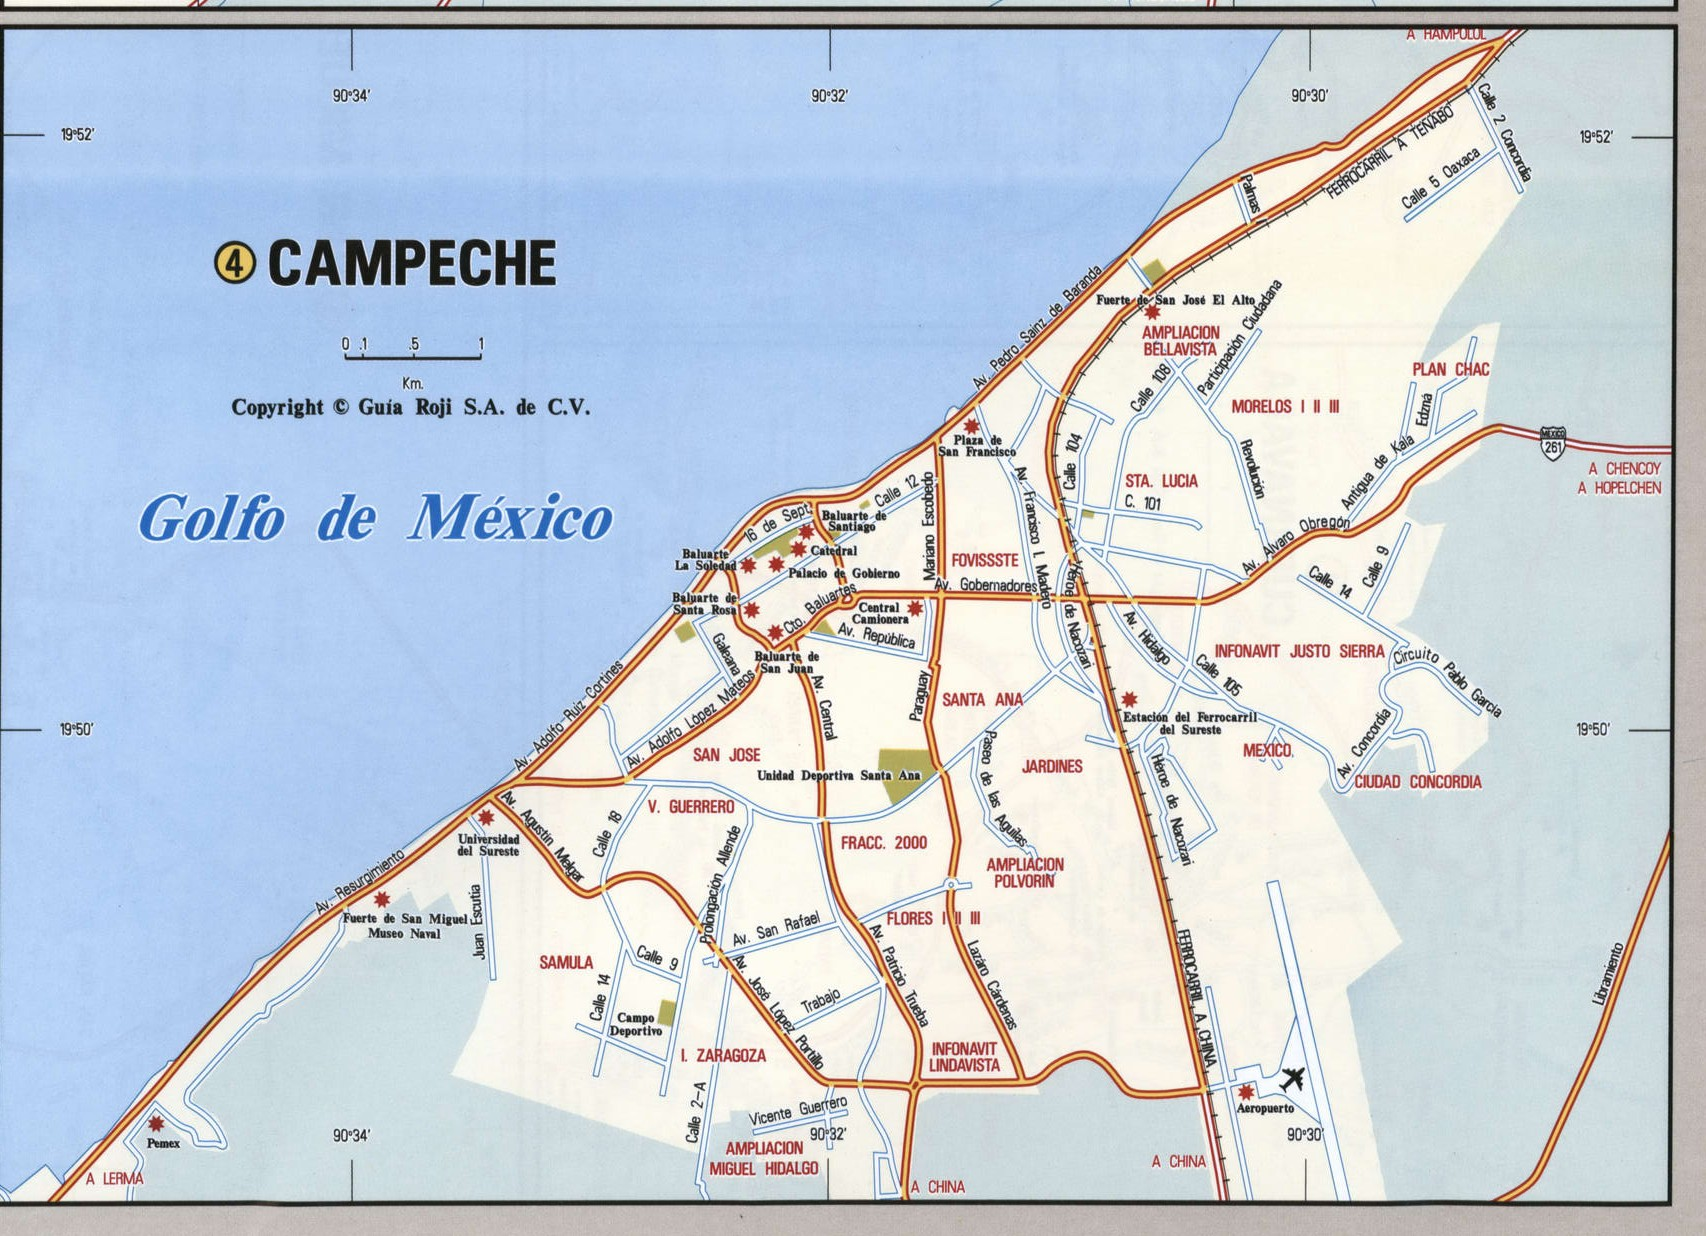 Campeche city map